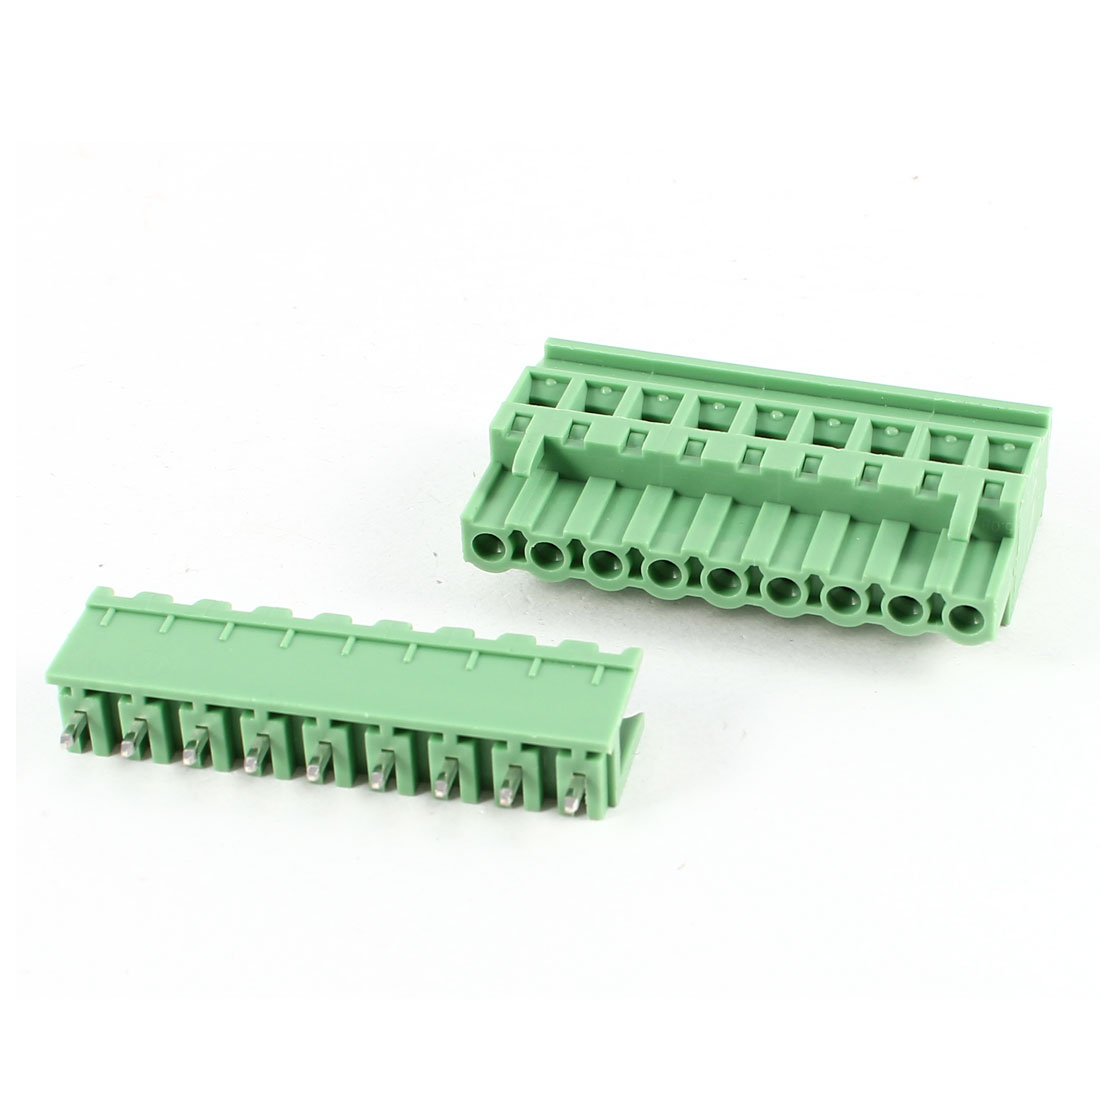 Green KF2EDGKA 5.08mm 10Position Screw Pluggable Terminal Block Connector 300V 10A